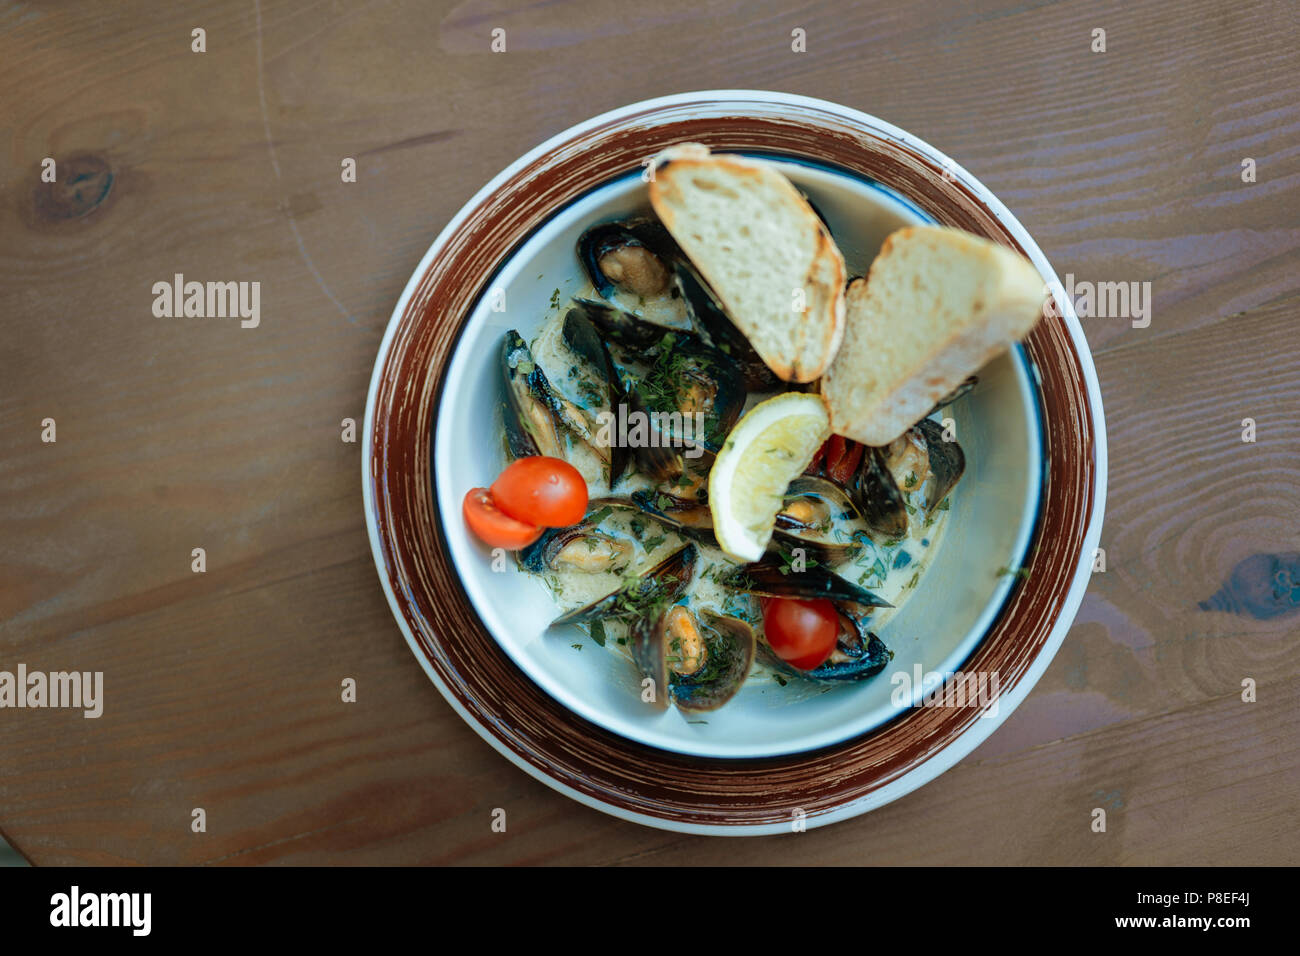 Top view of seafood dish with mussels in creamy sauce - Stock Image